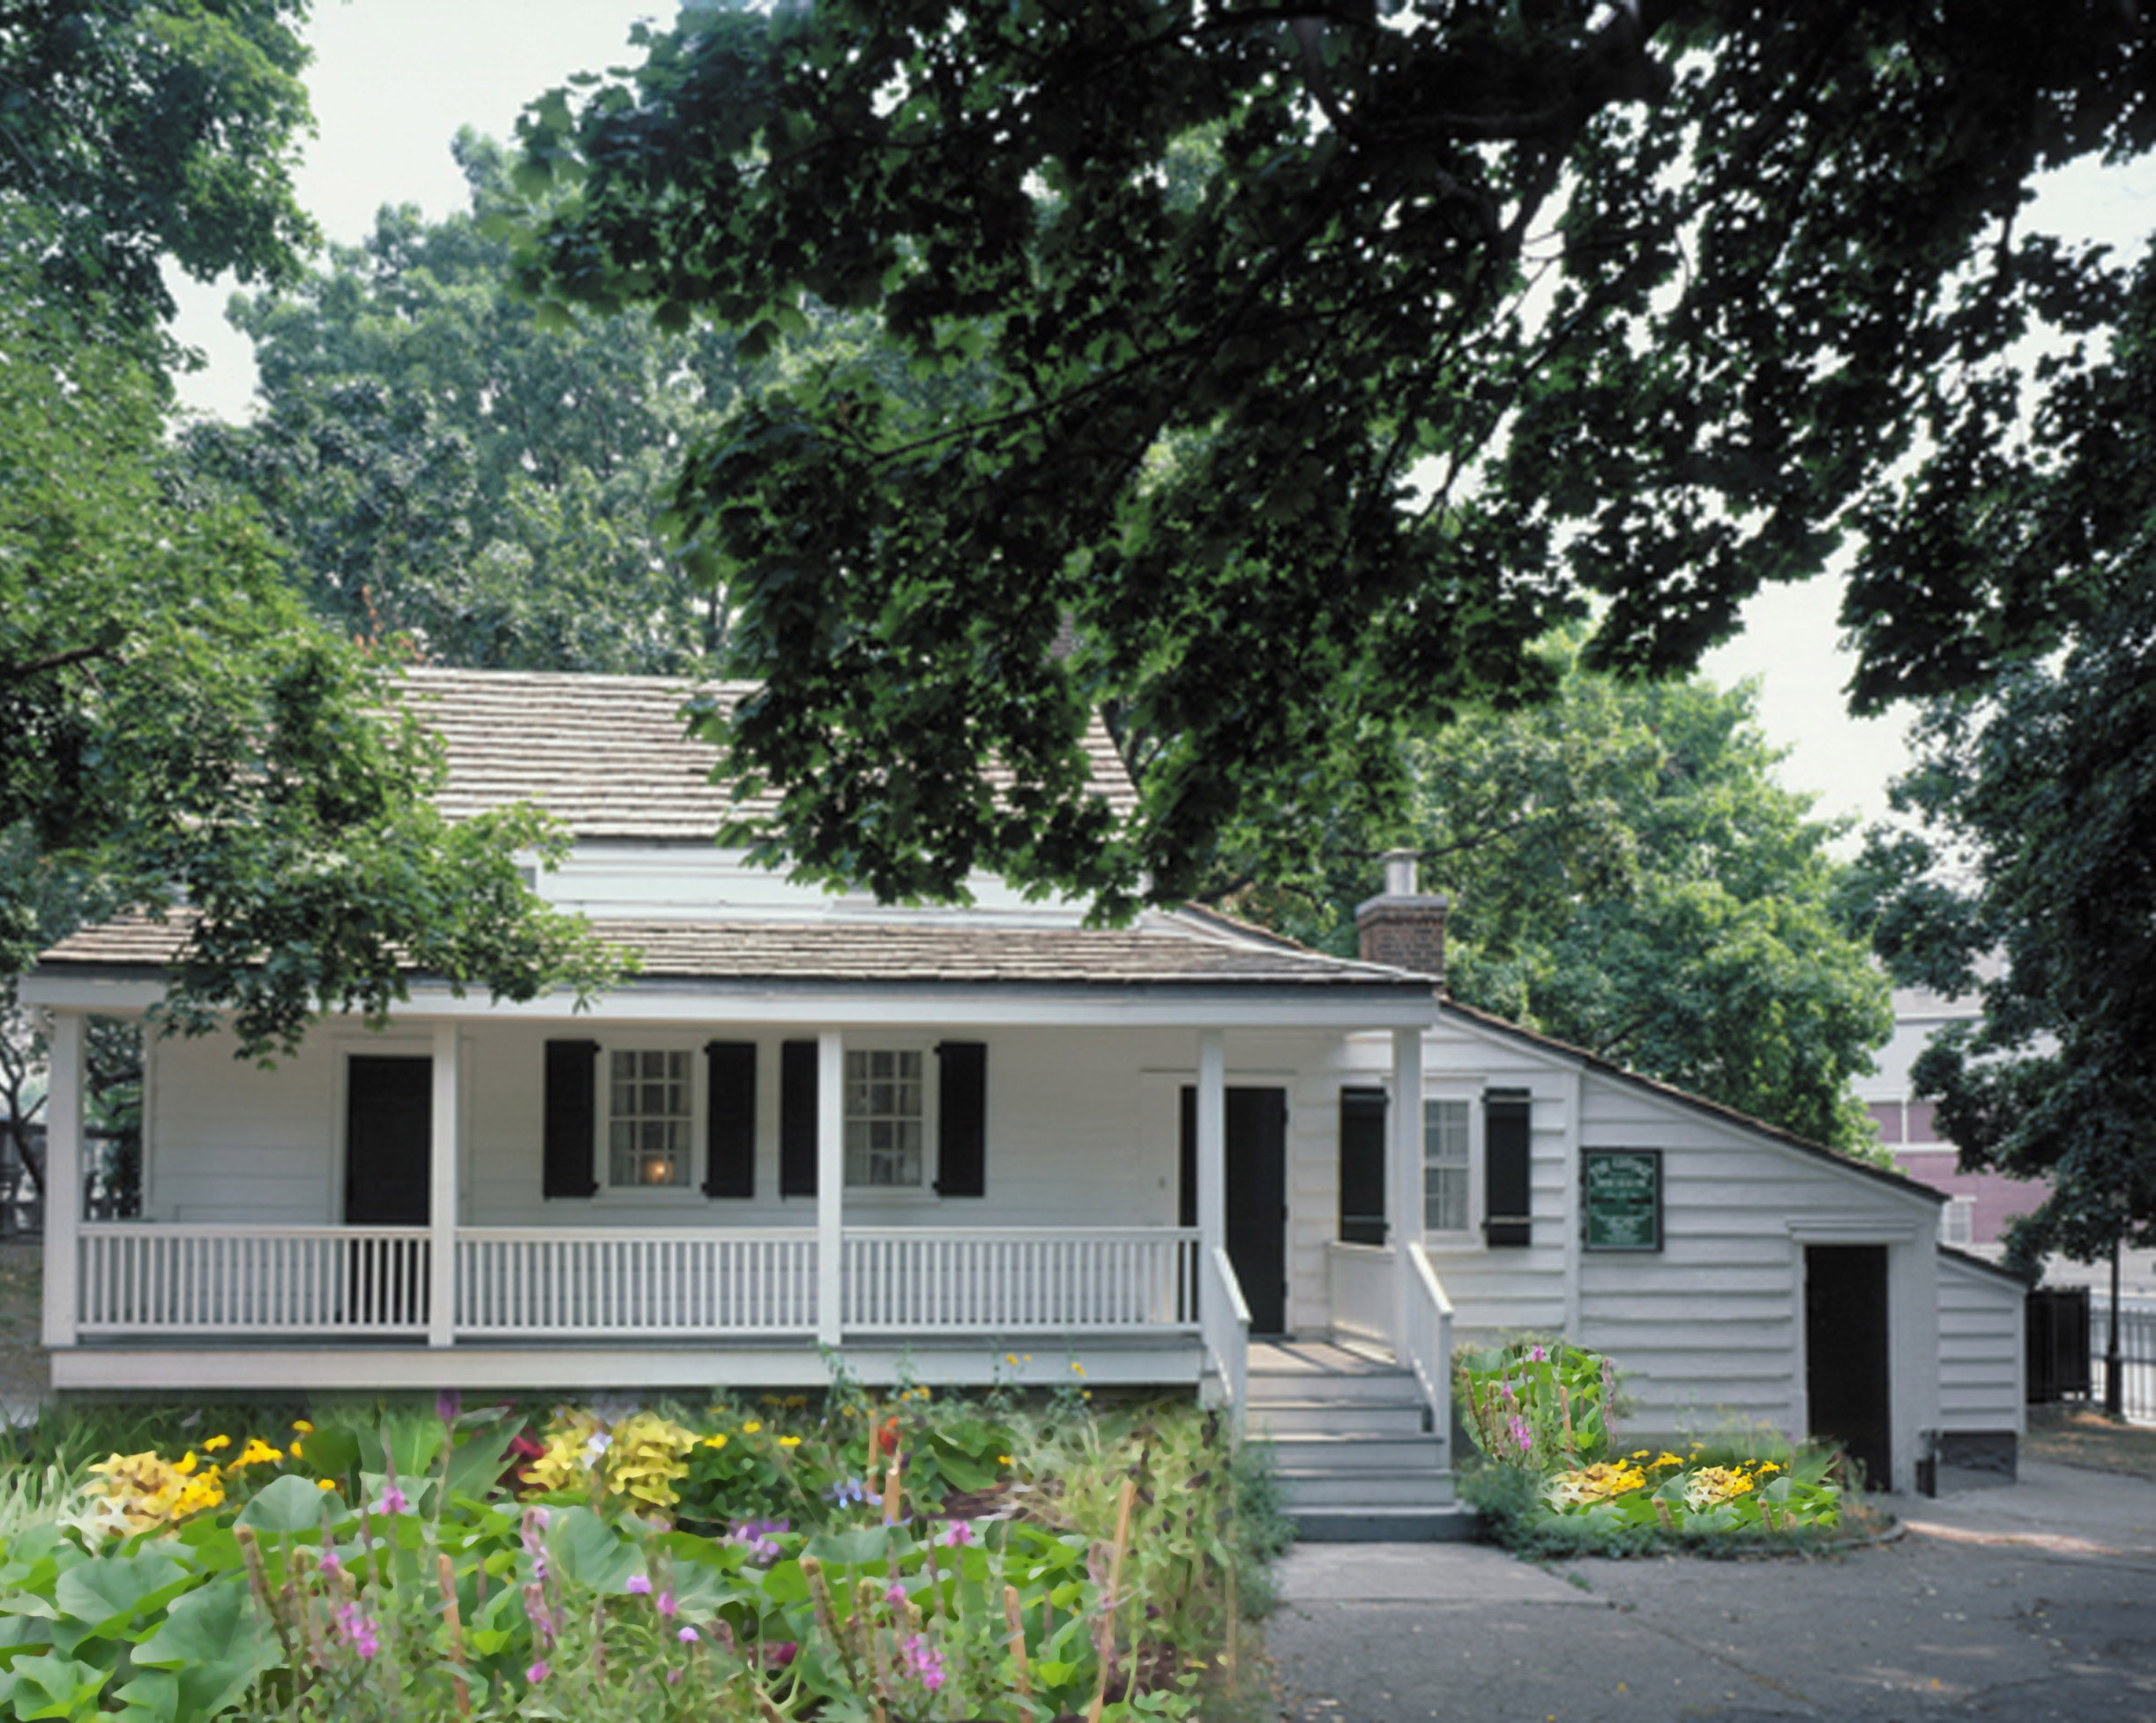 Edgar Allan Poe Cottage | Courtesy of The Bronx County Historical Society